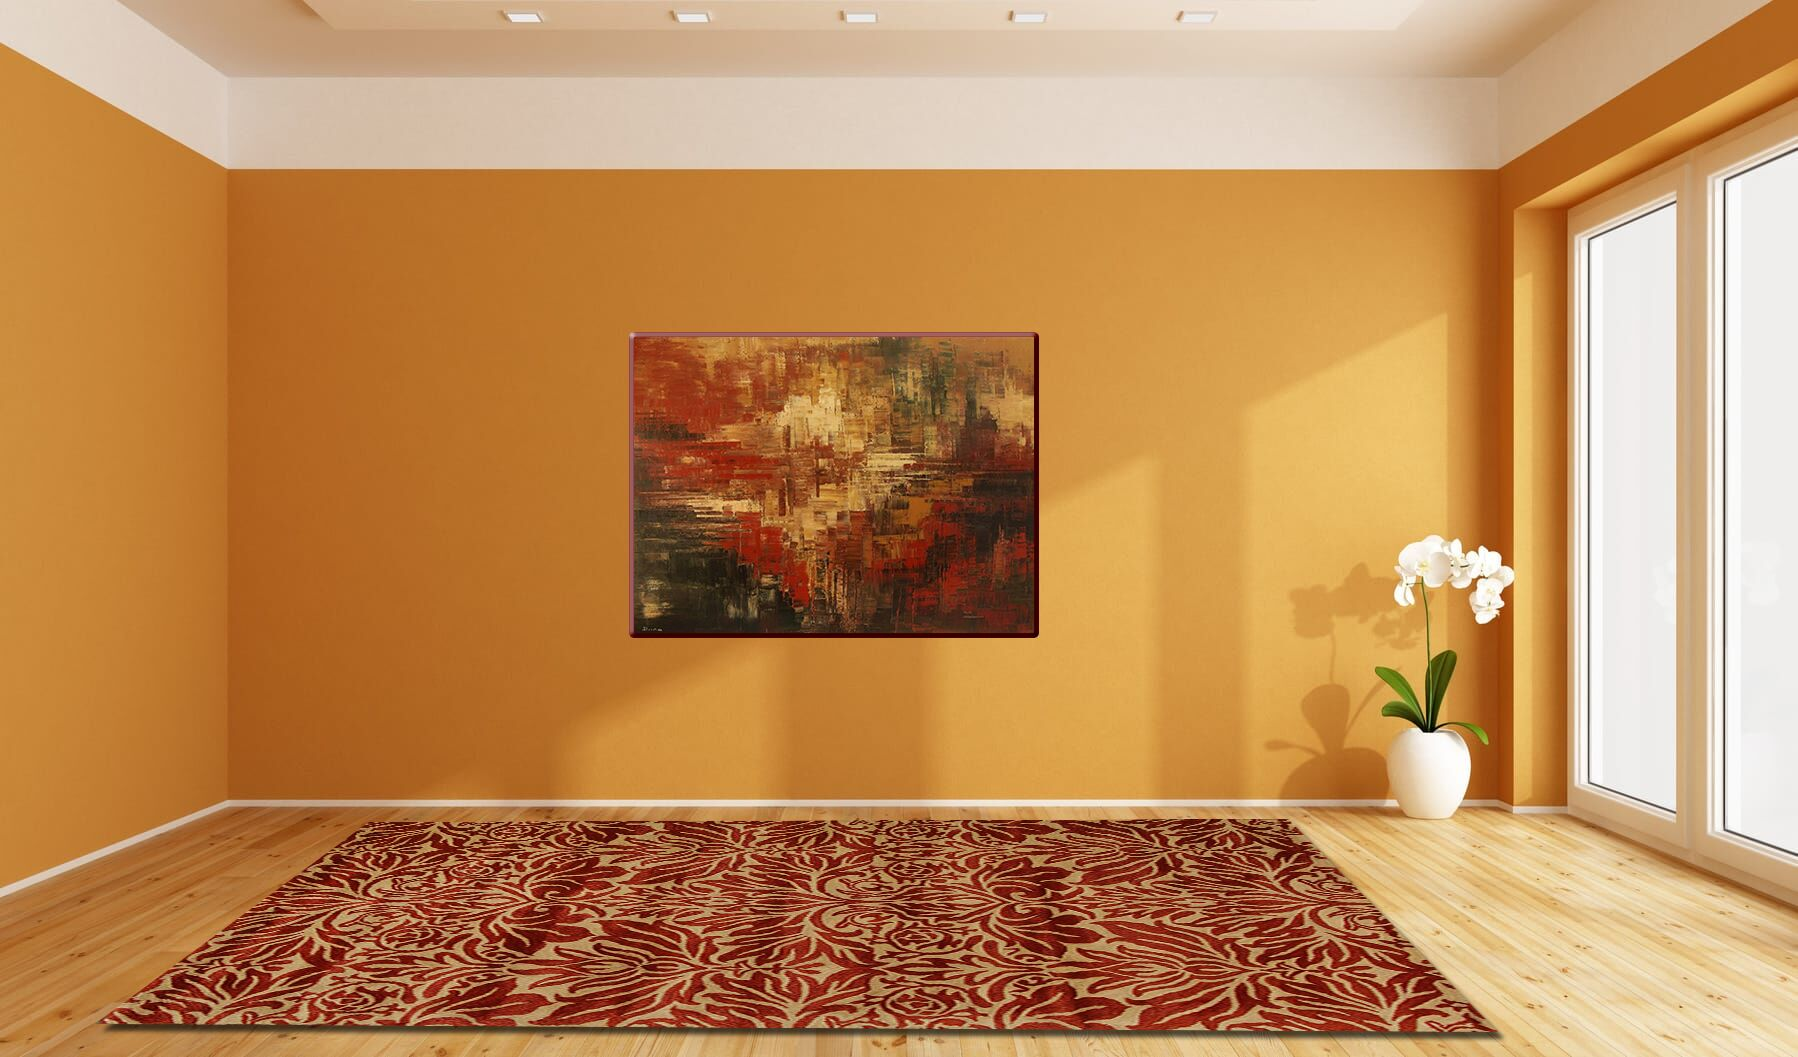 Smart Red Area Rug Rug Size: 5' x 8'